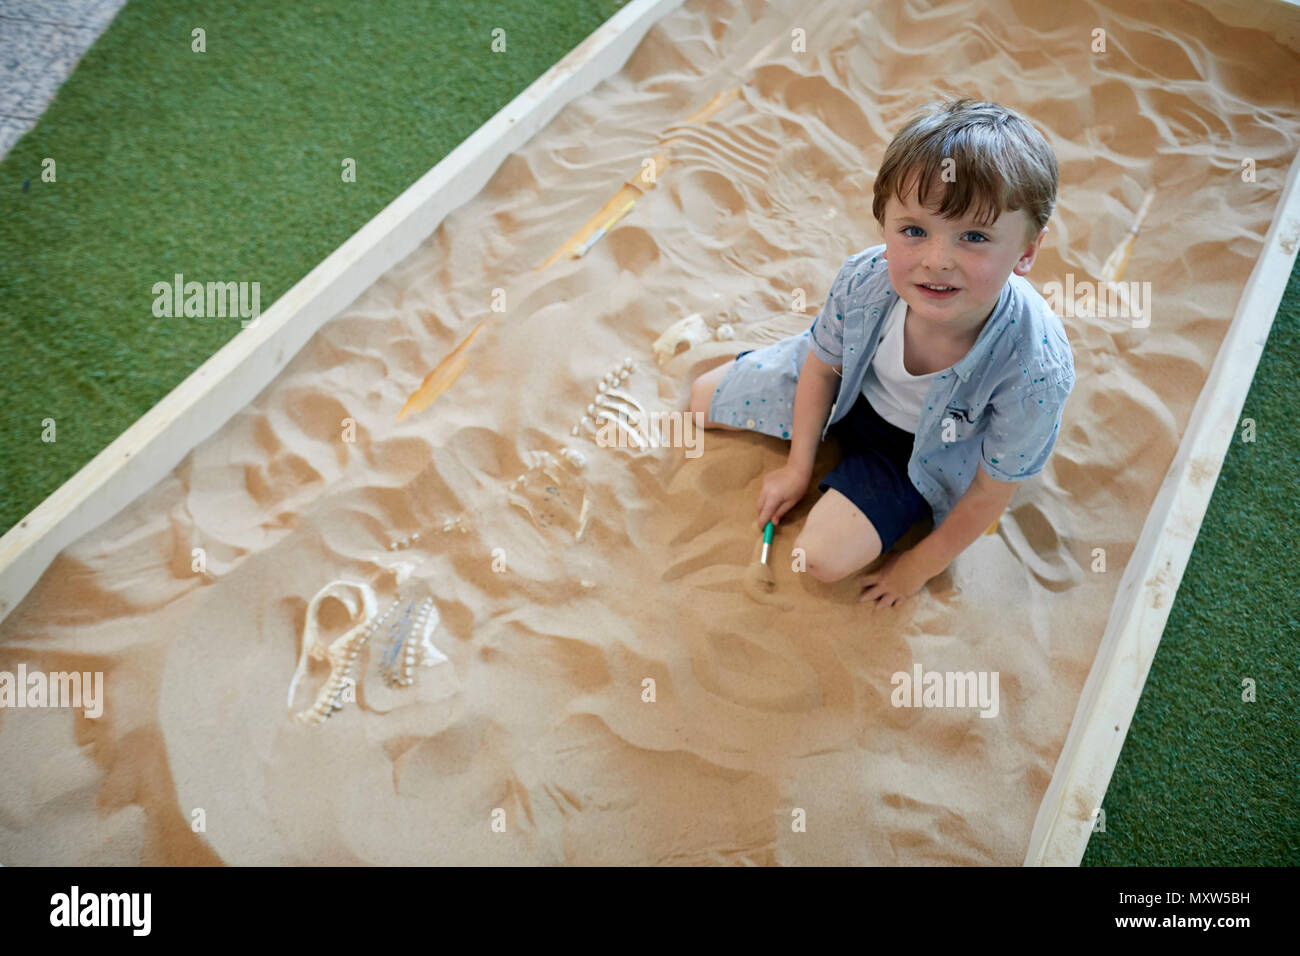 Child playing at being an Archaeology, or archeology discovering dinosaur bones in a sandpit - Stock Image